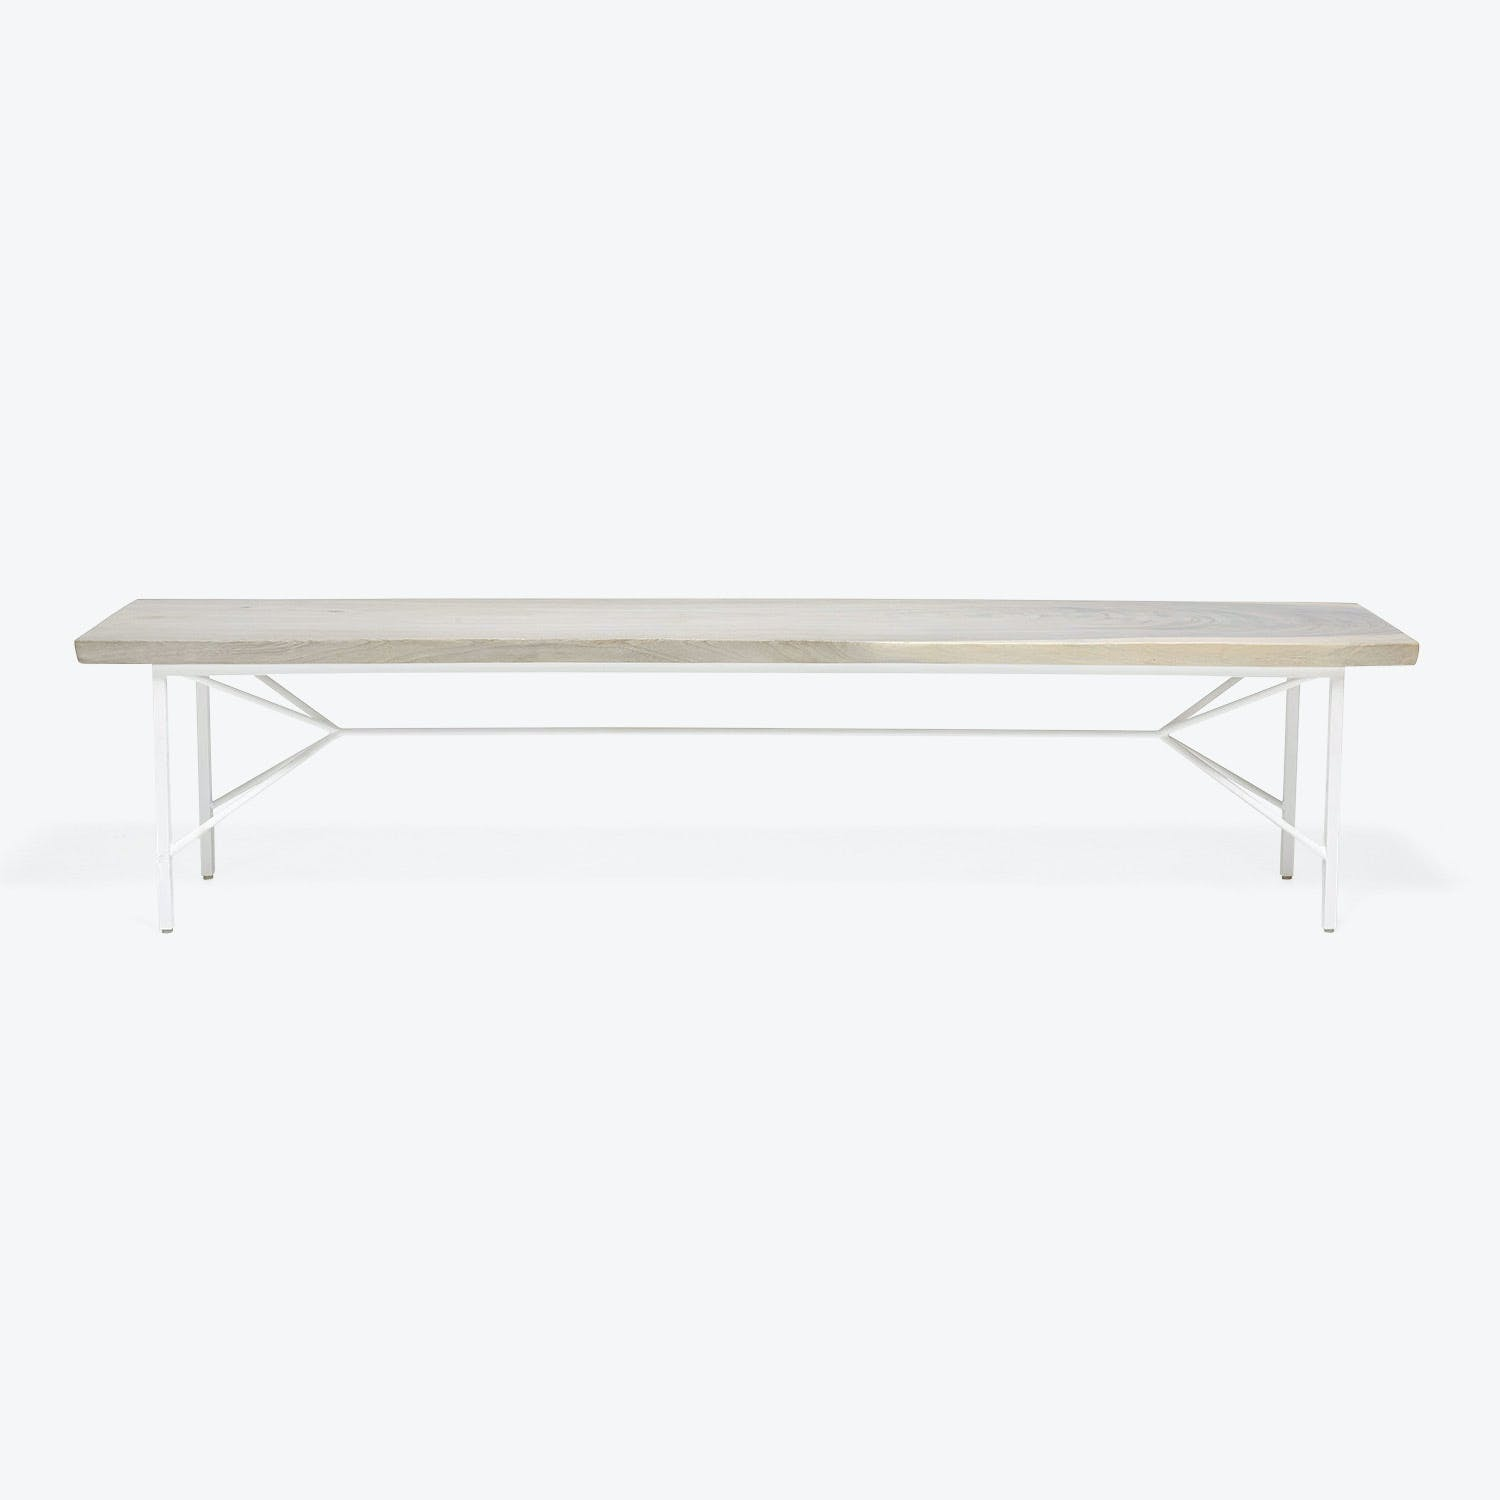 Product Image - Viento Helix Reclaimed Wood Bench White